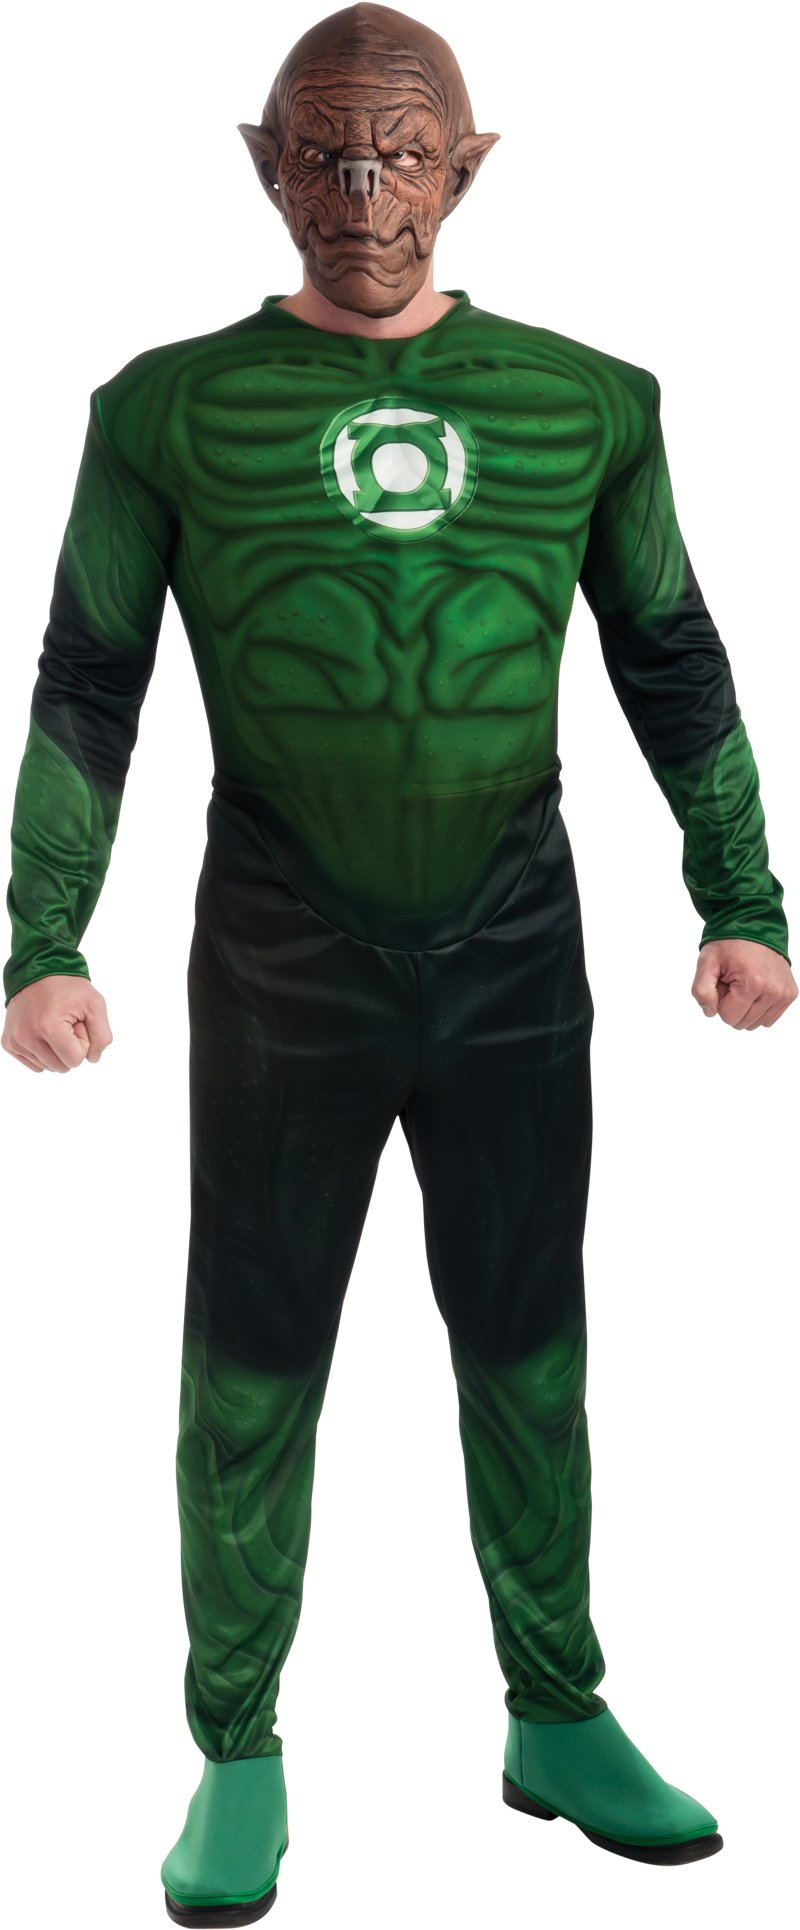 Green Lantern Movie - Deluxe Kilowog Adult Costume